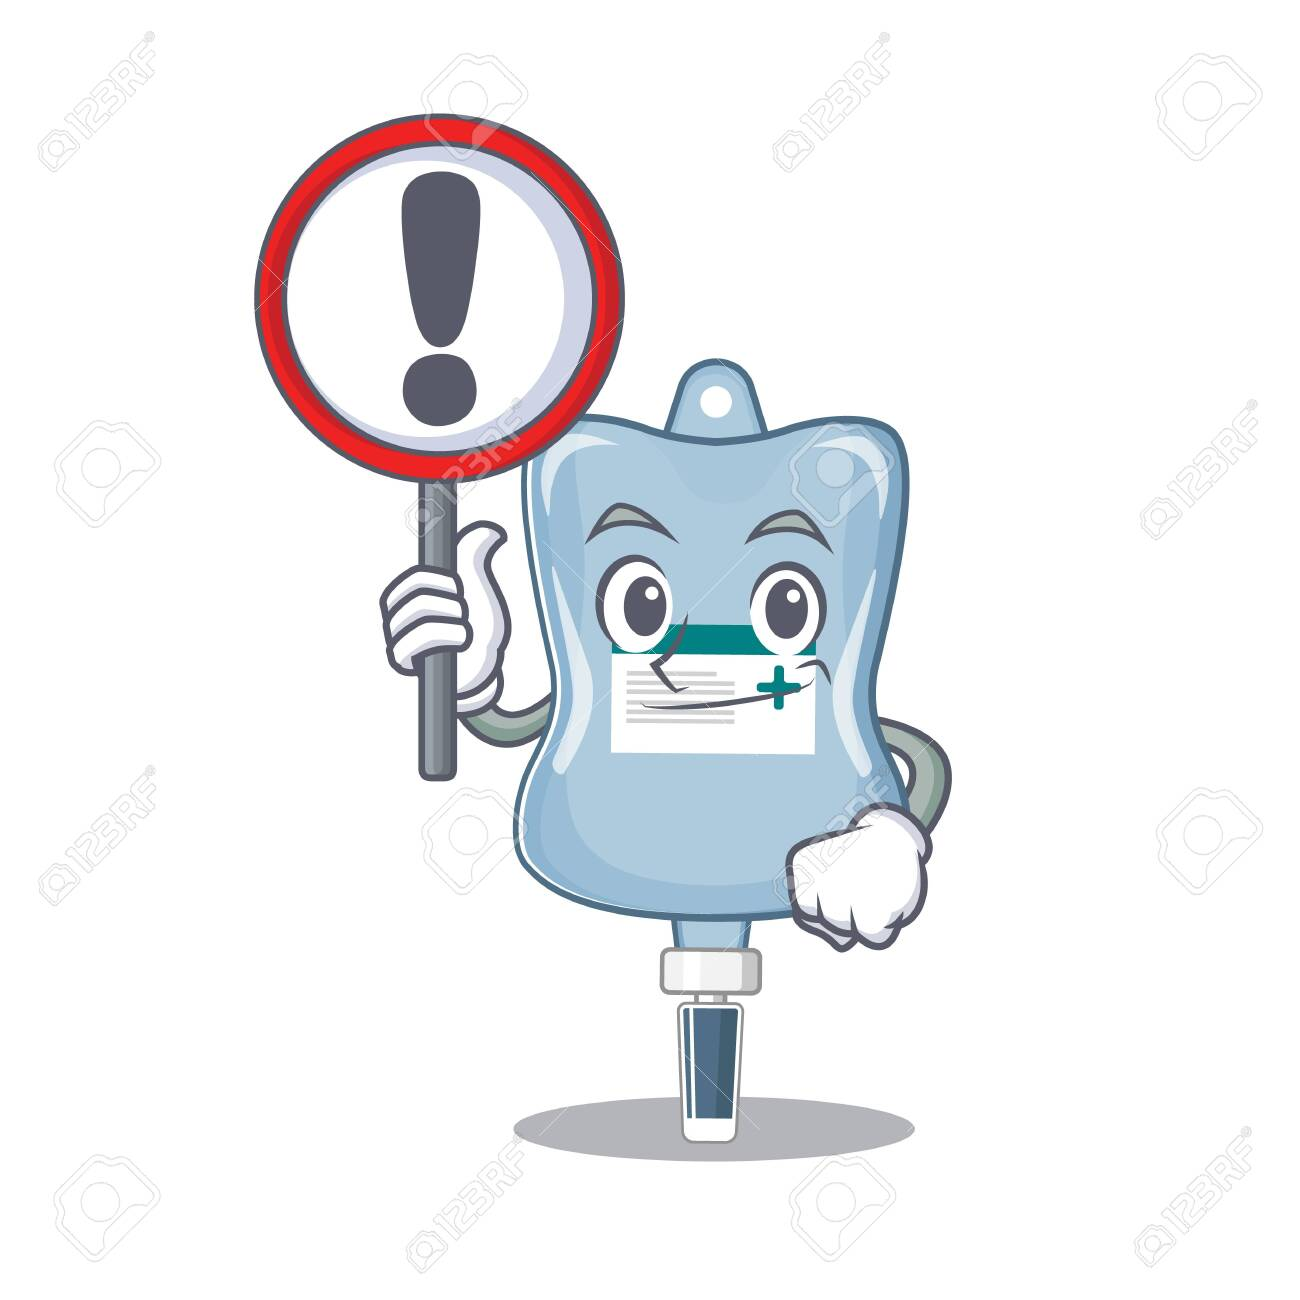 cool and funny saline bag raised up a Sign. Vector illustration - 139093420